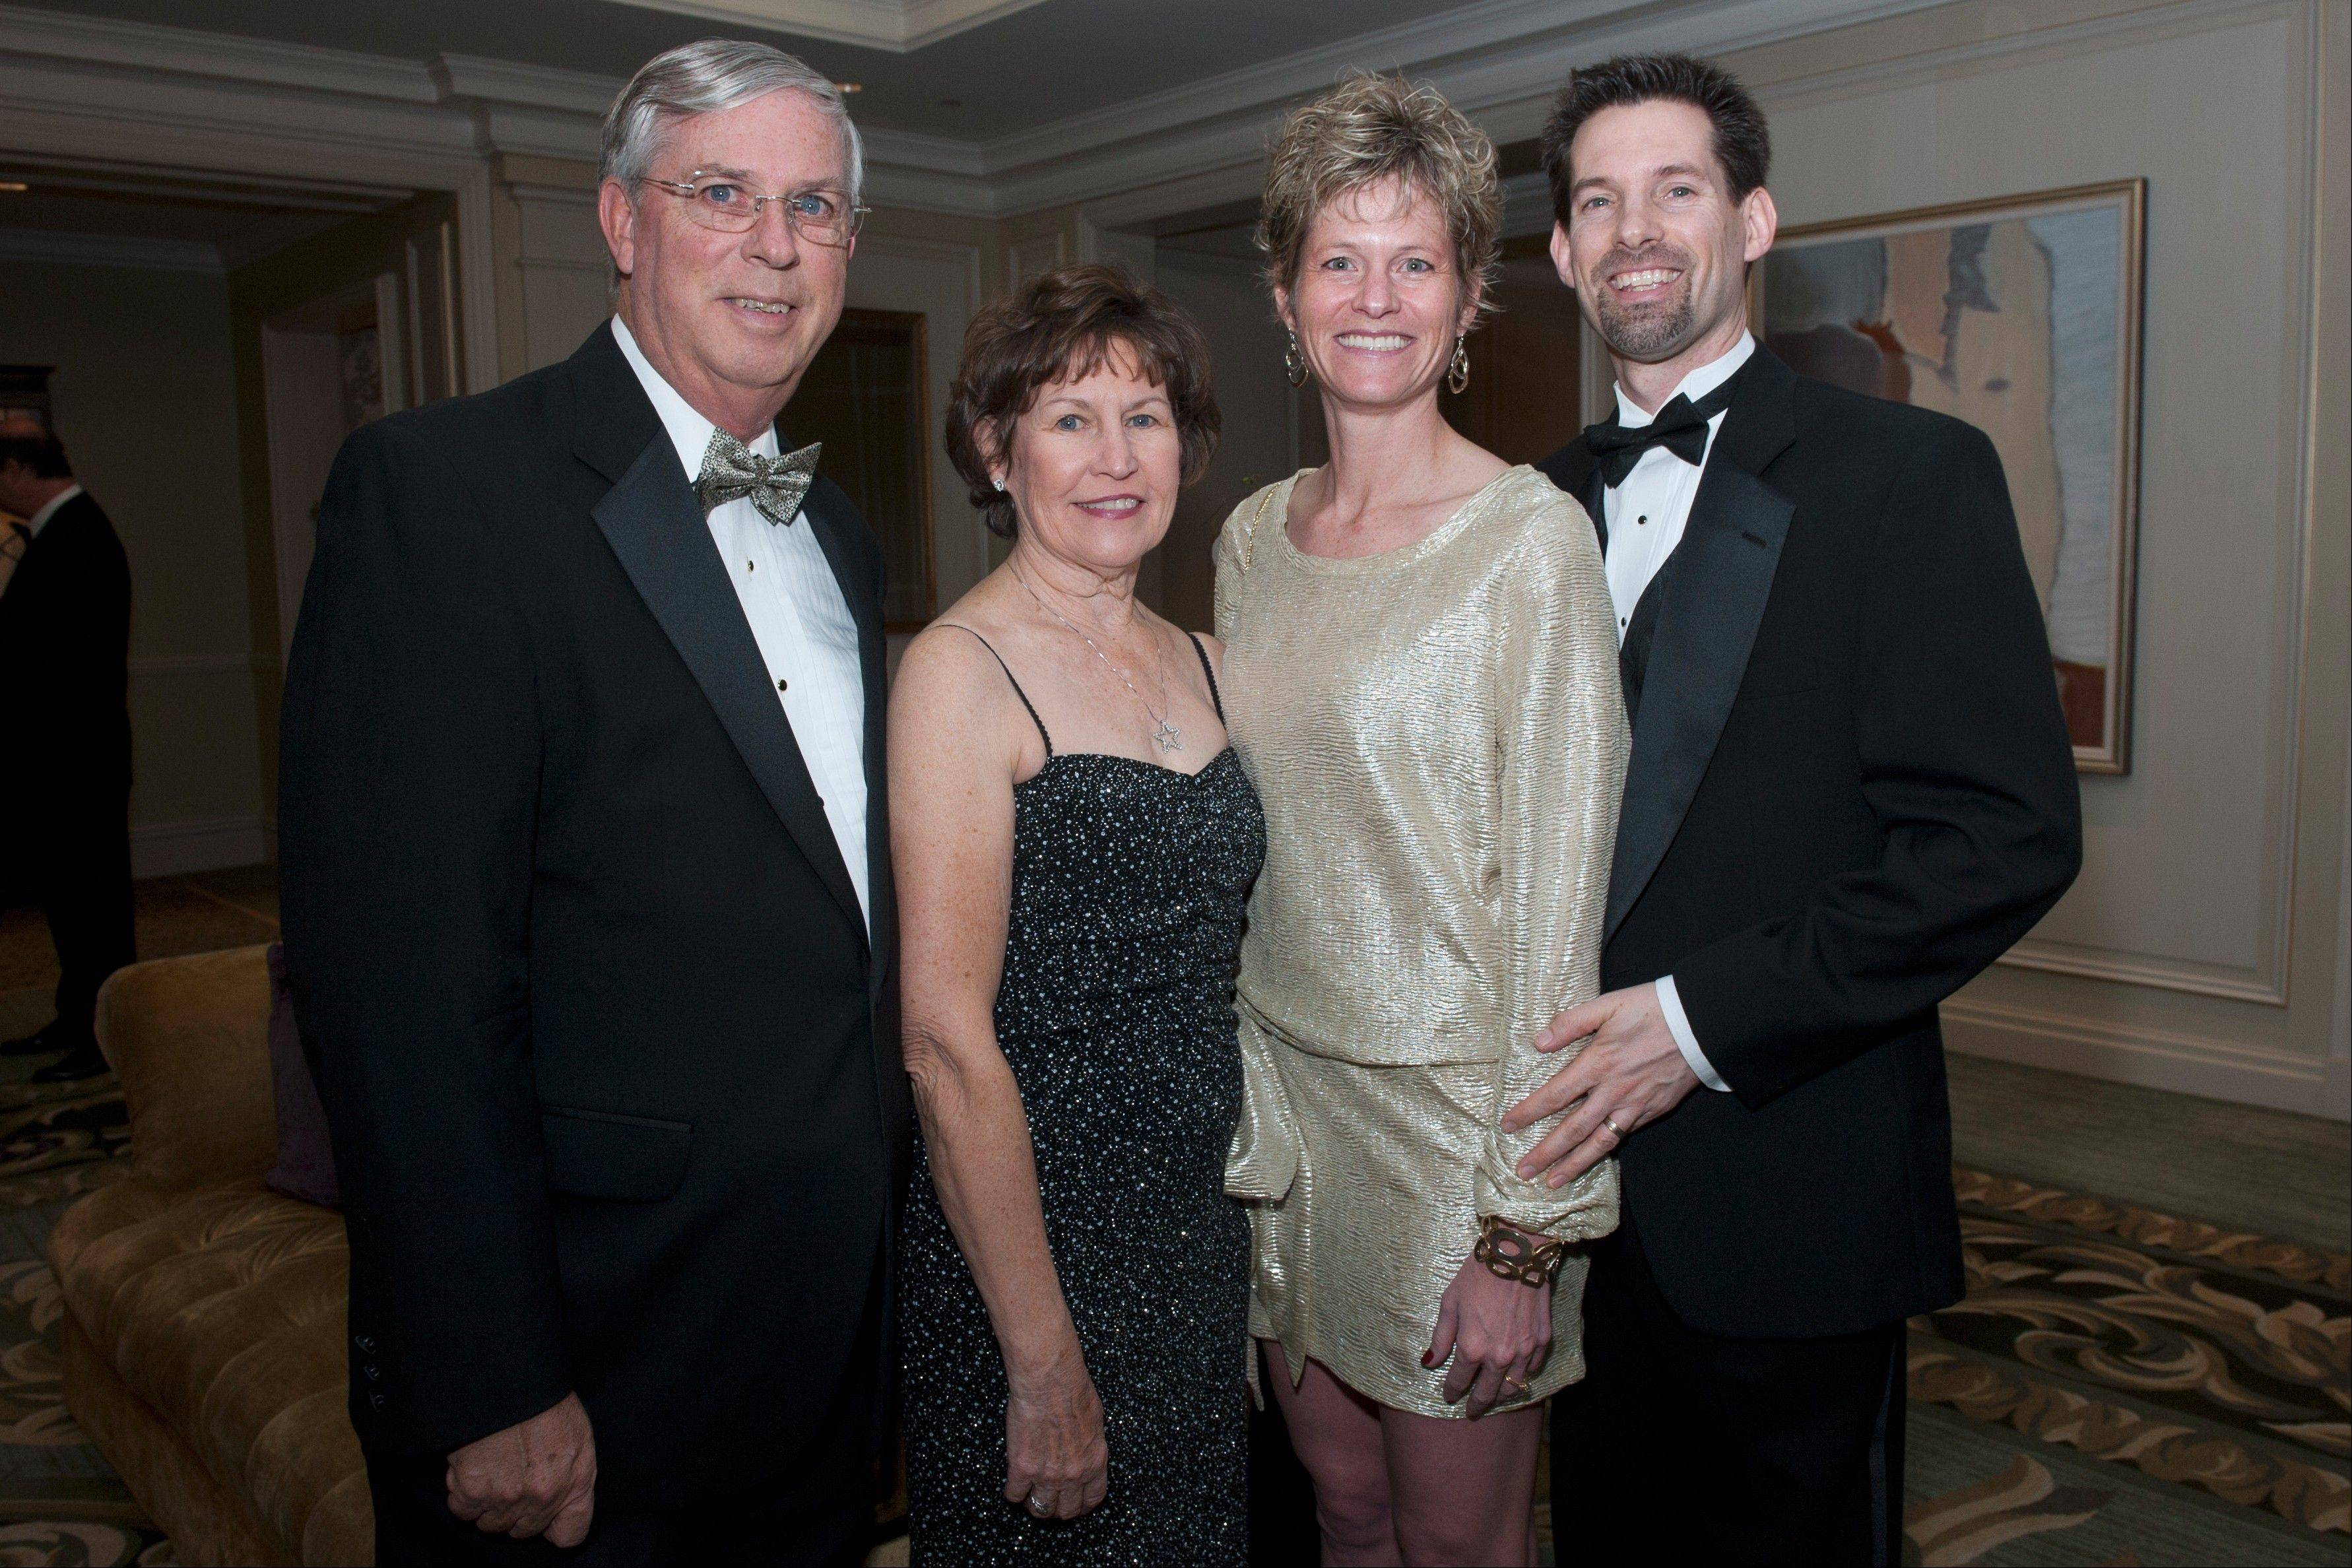 David and Linda Riley of Barrington, on left, and with their son Kevin, far right, and his wife Amy, of Chicago, were among the more than 300 guests to attend the record-breaking Clearbrook Shining Star Ball this weekend. David Riley is a former Clearbrook board chairman, Linda Riley was on he ball�s planning committee this year and Kevin Riley is on the organization�s associate board.